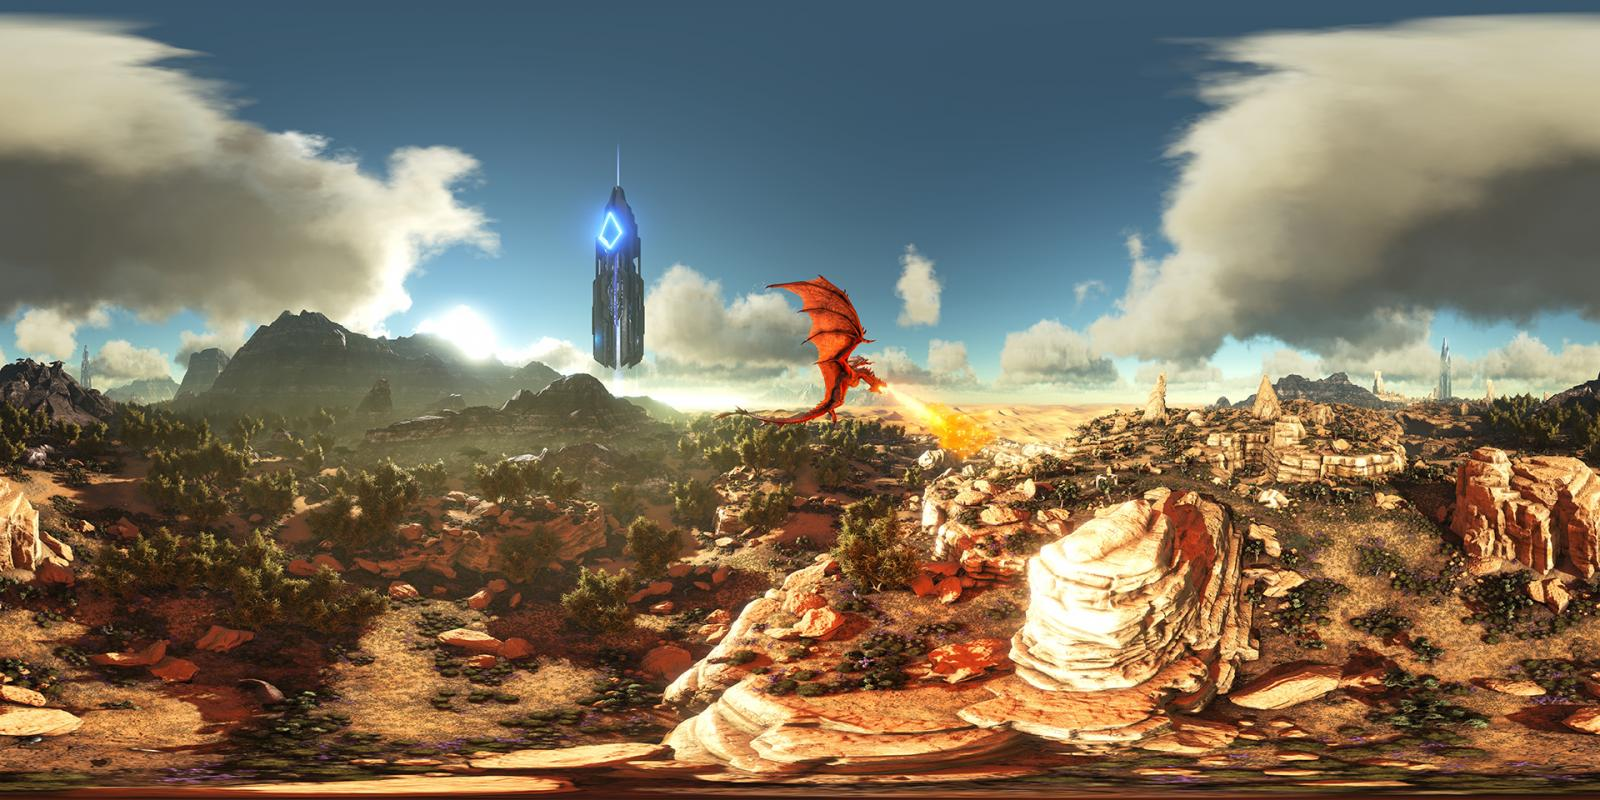 Vakarian - Dessert Mountains - Panoramic 360 Steroscopic 3D.jpg